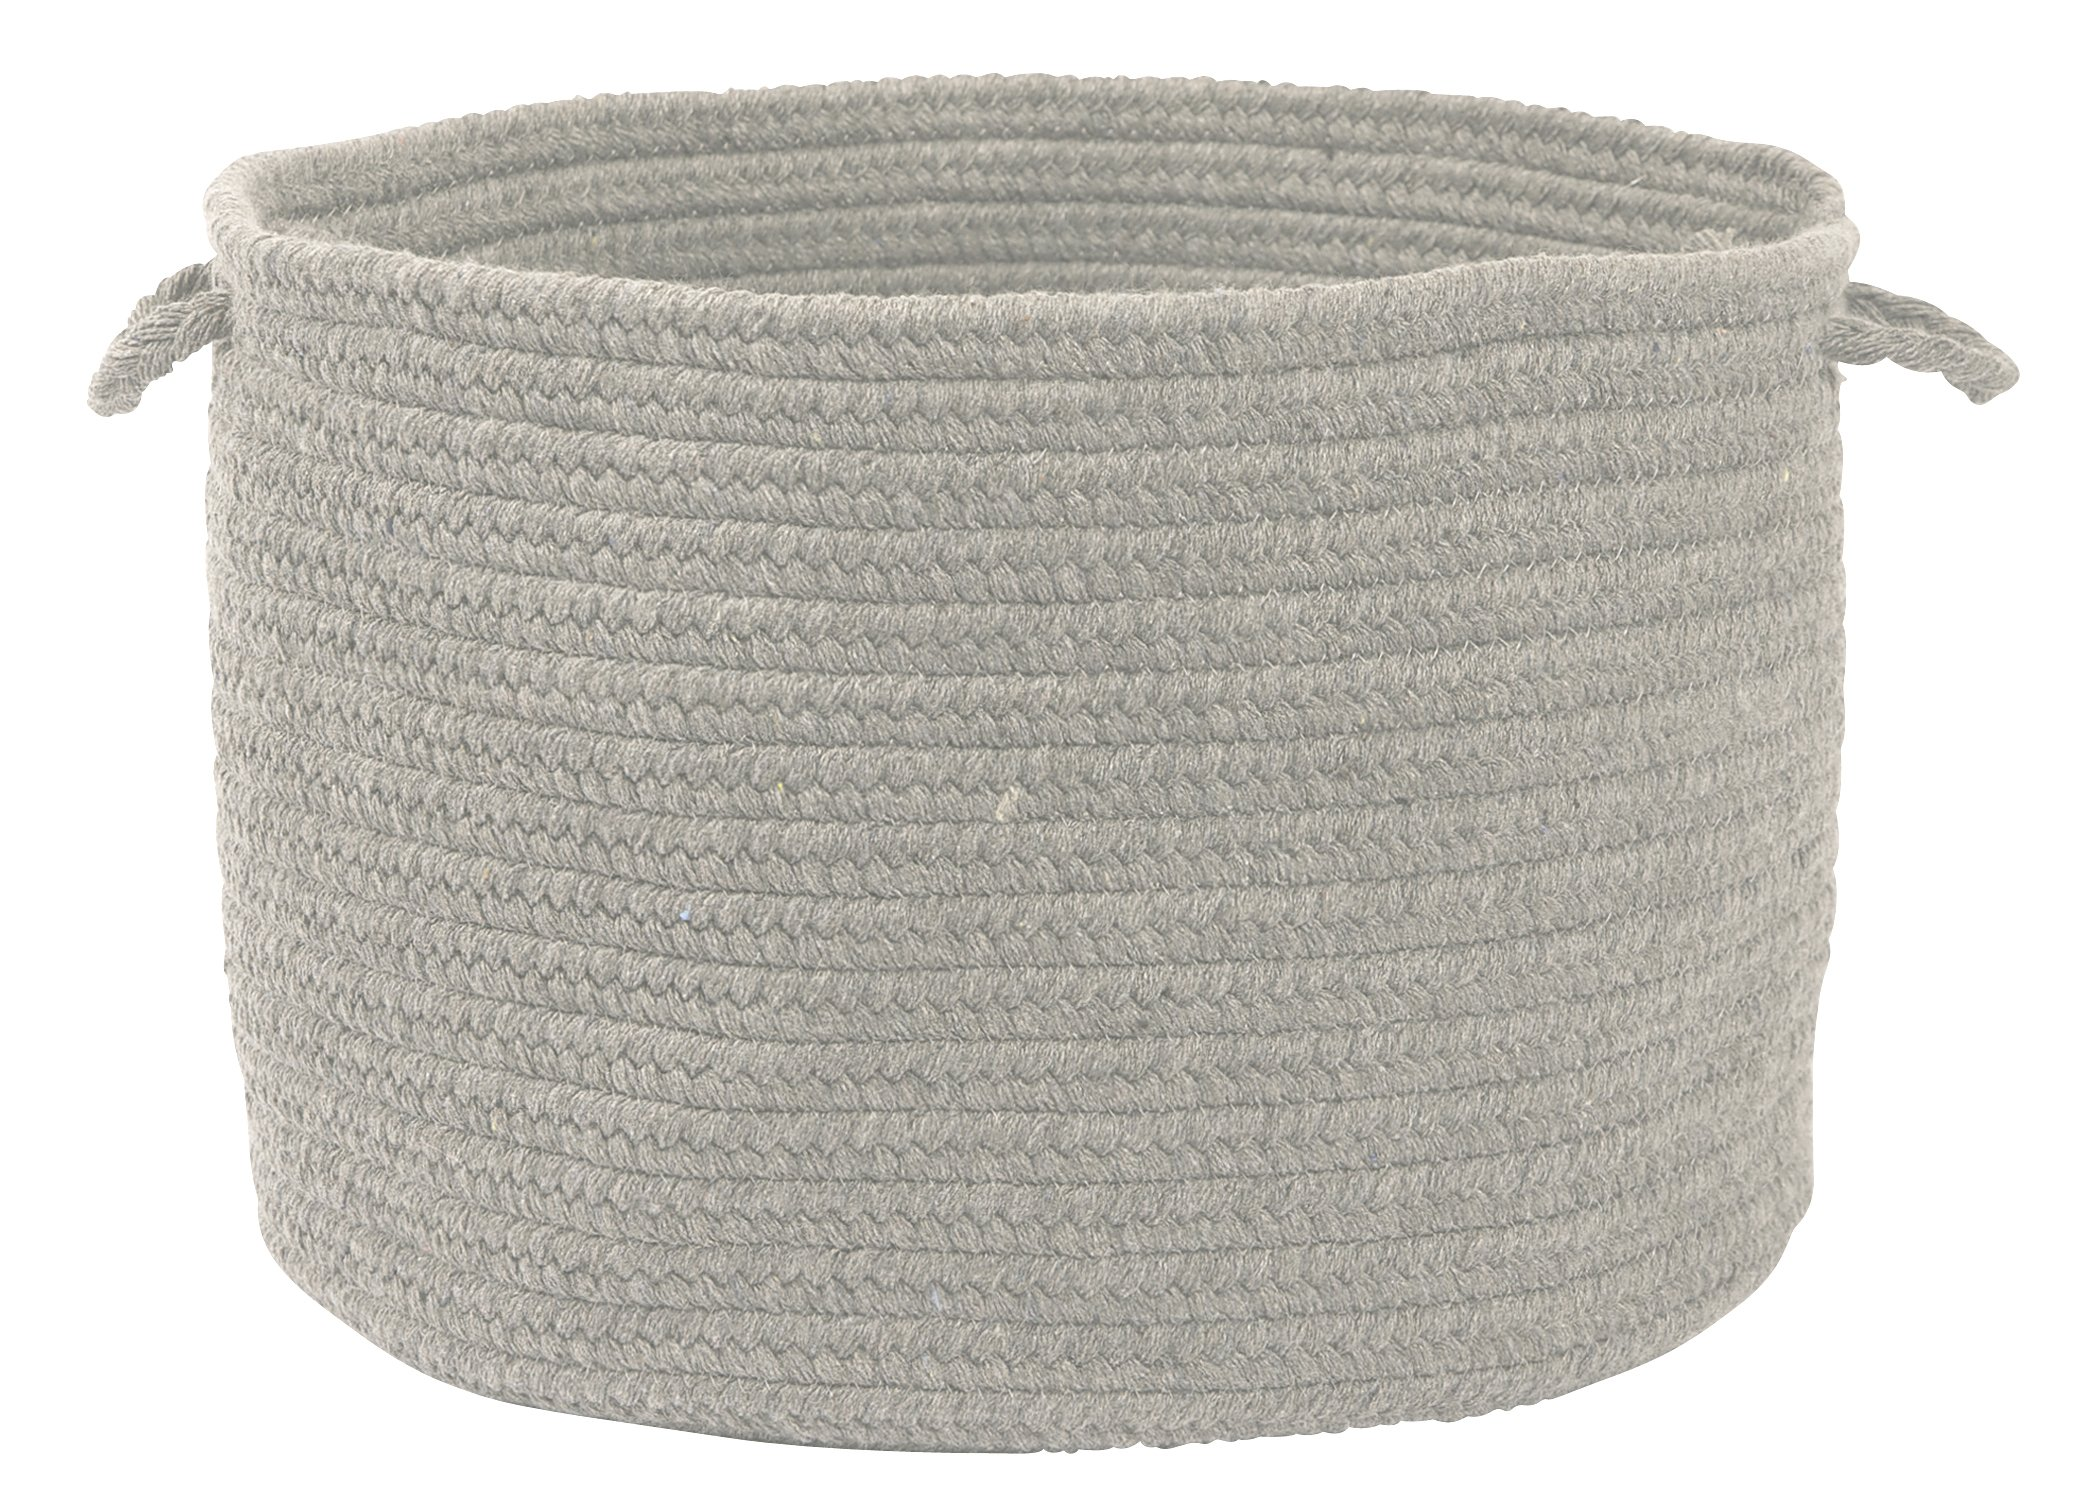 Colonial Mills WL18 18 by 18 by 12-Inch Bristol Storage Basket, Gray - Wool: Wool yarns create a texturized, heathered look with unmatched quality, durability, and timeless style. Functional Decor: Use simultaneously as a decorative accent to your design style and as a practical addition to your home Handcrafted: Manufactured at our factory in Rhode Island, this item is made-to-order and handcrafted with a personal touch of American craftsmanship. - living-room-decor, living-room, baskets-storage - 91oKliqZSiL -